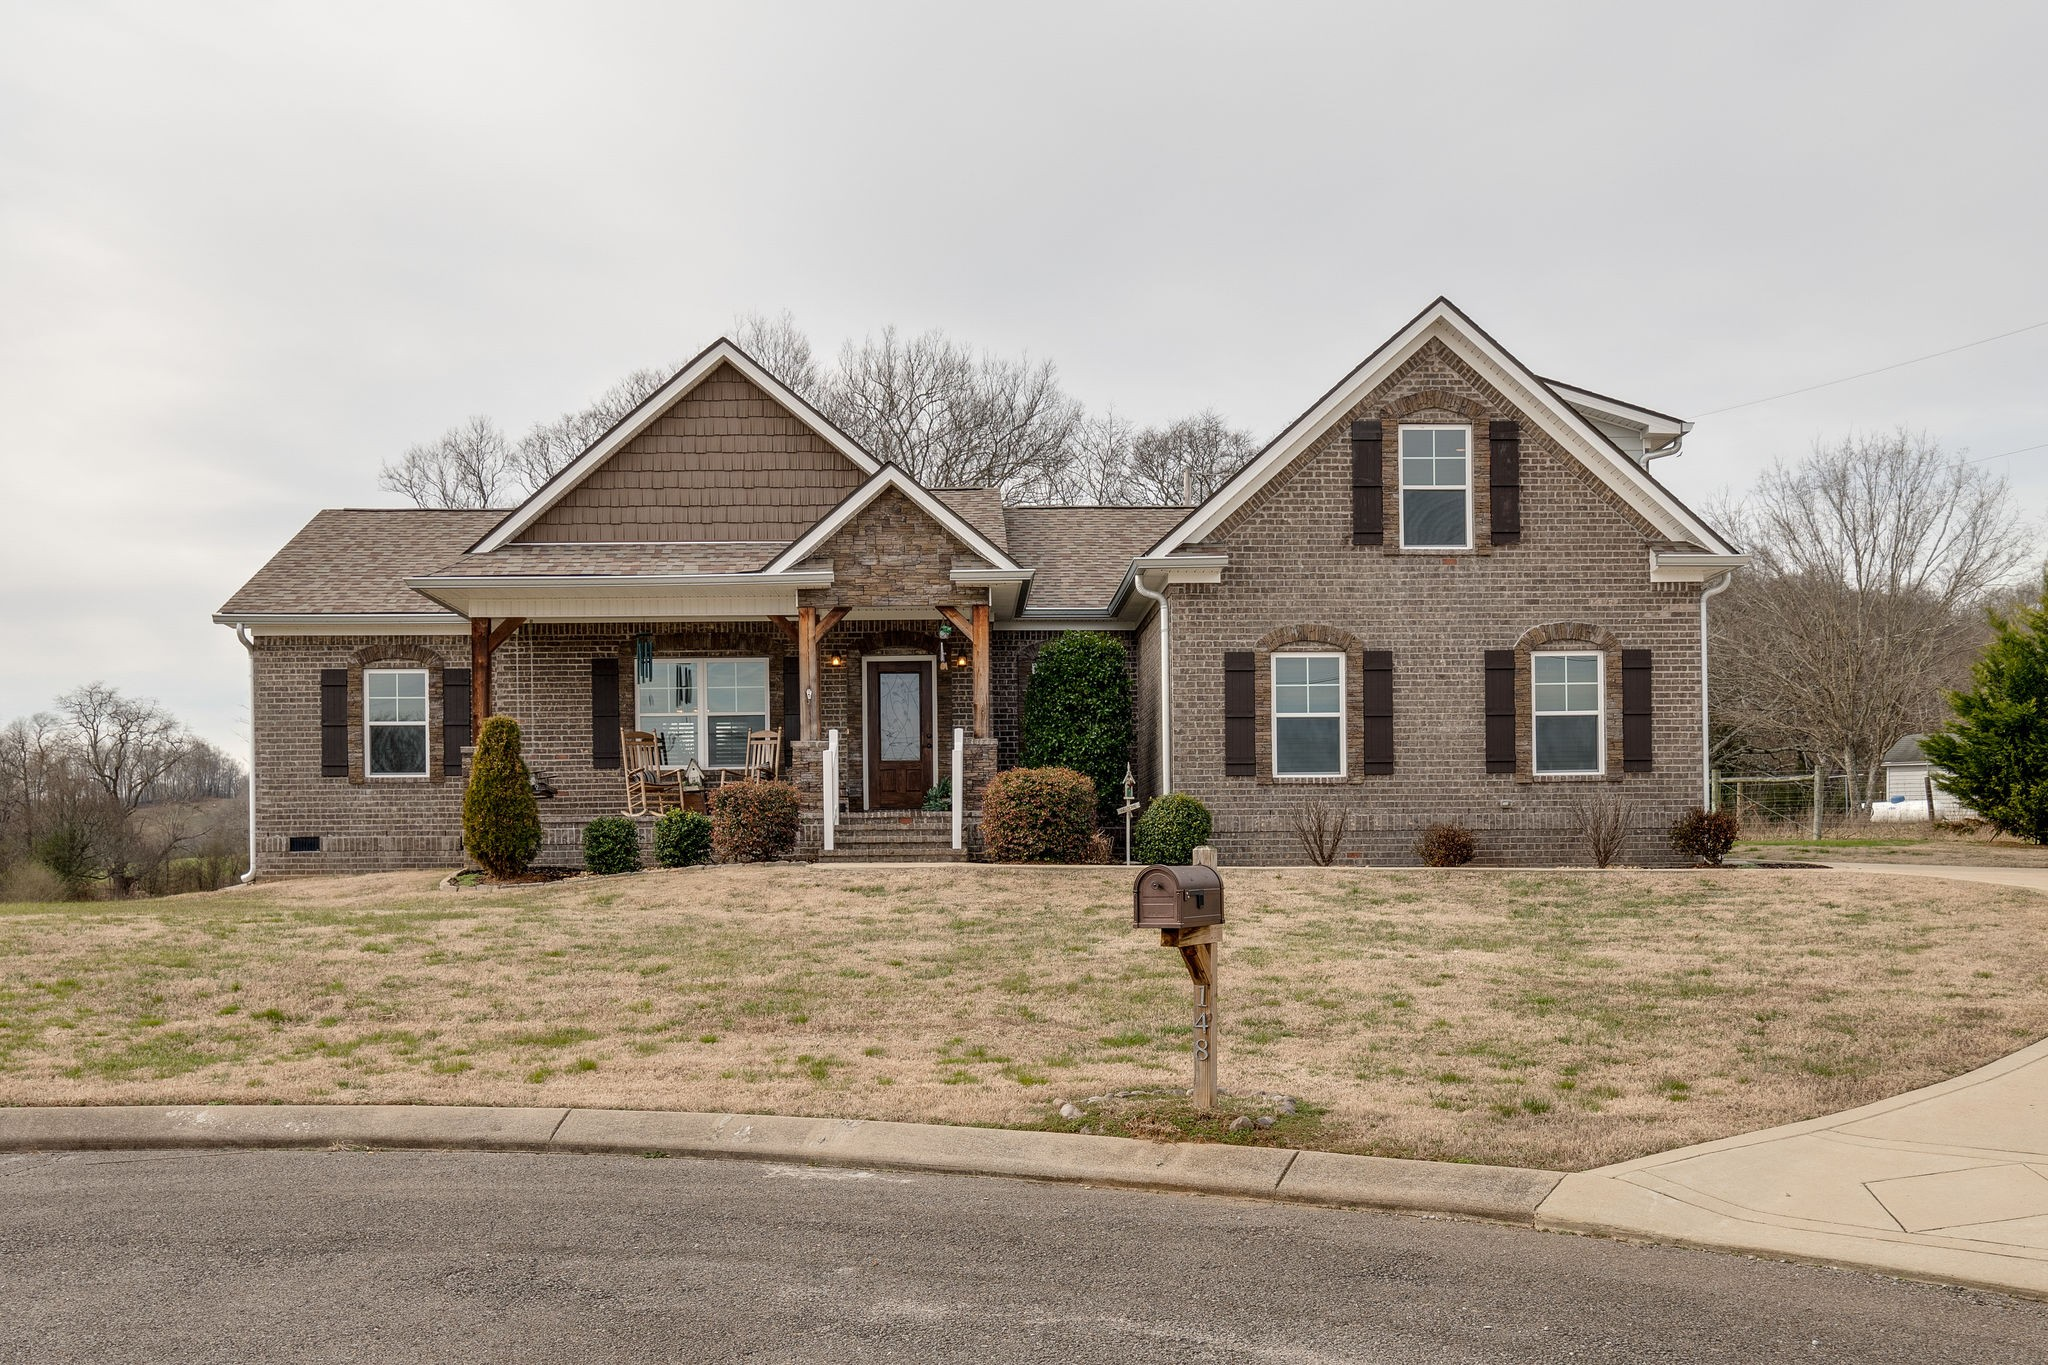 148 Preda Way, Pulaski, TN 38478 - Pulaski, TN real estate listing